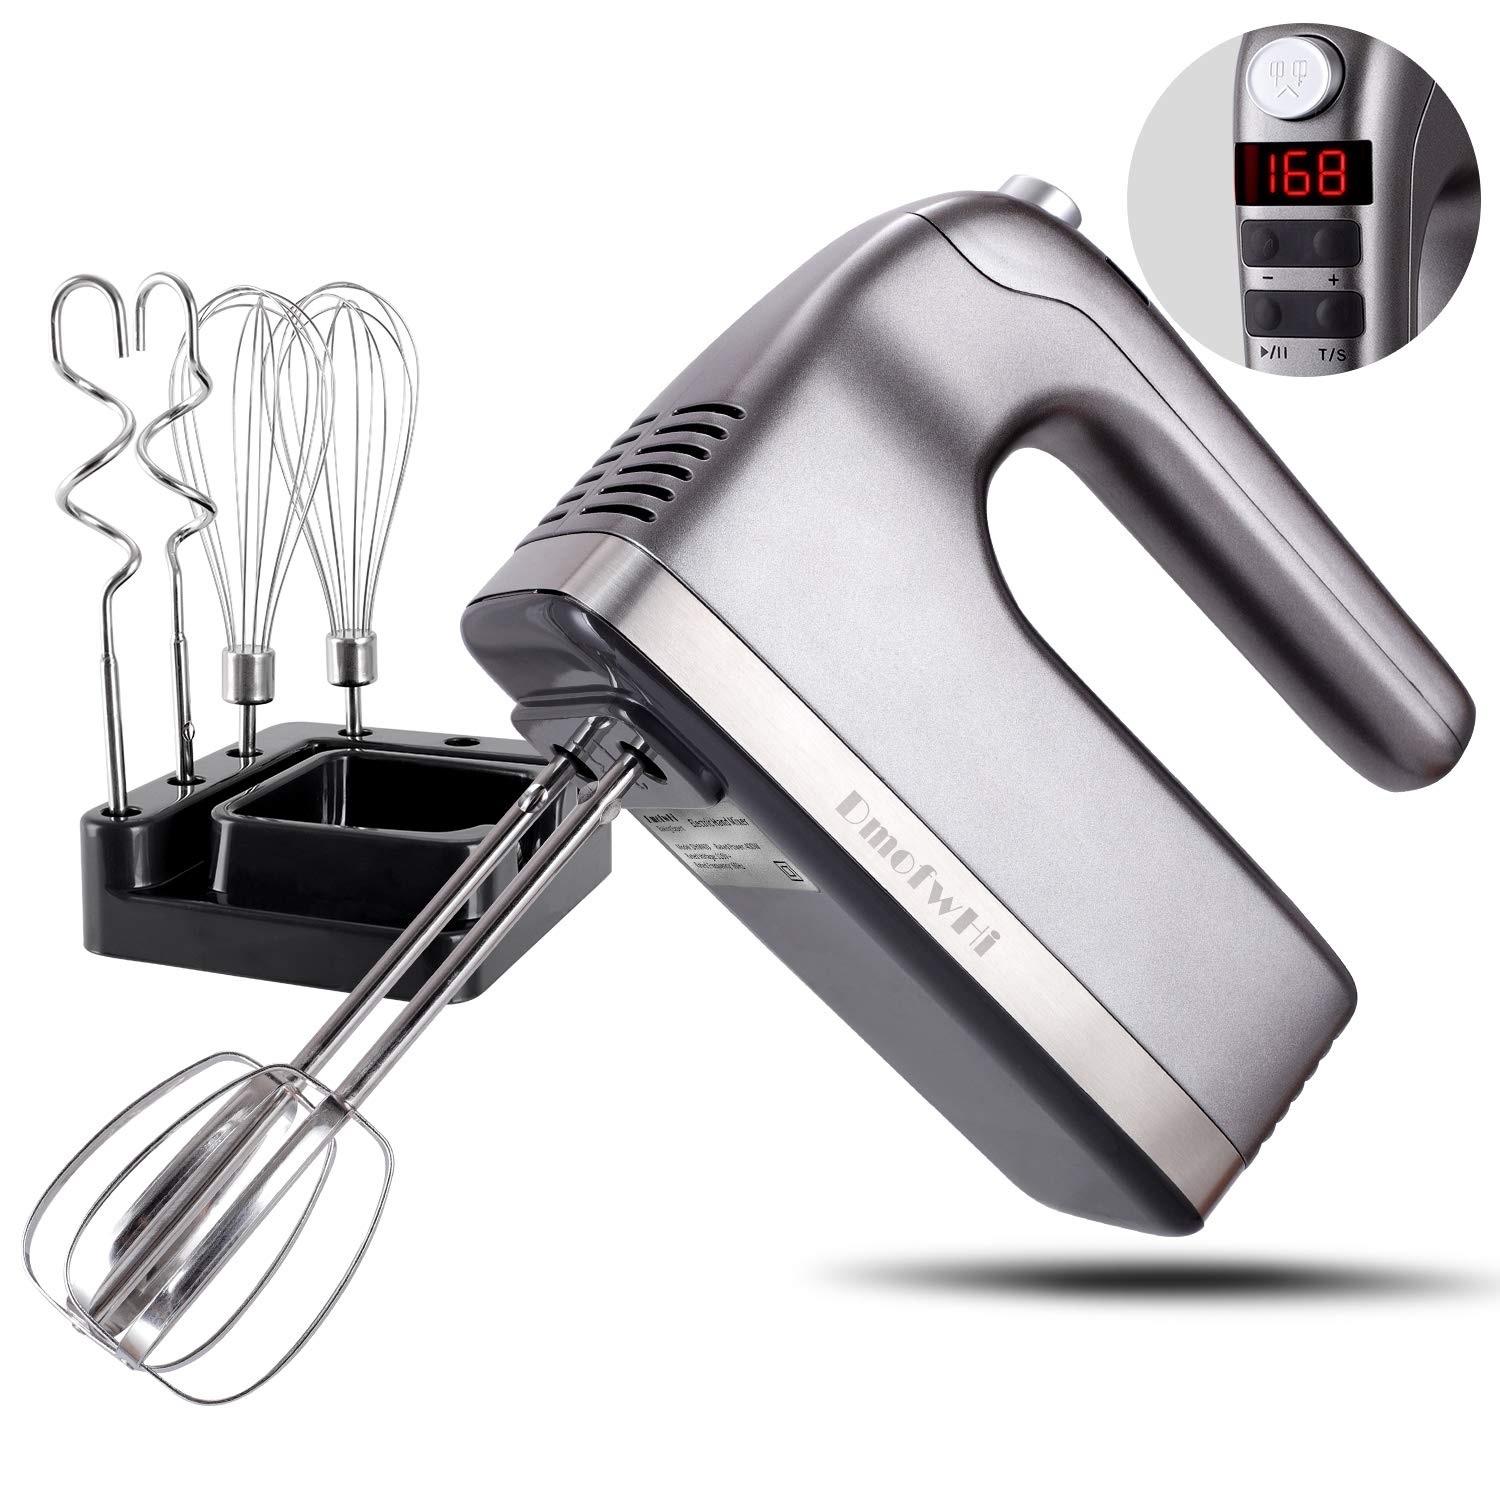 DmofwHi 9-Speed Hand Mixer Electric with Timer and Digital Screen(400W), Kitchen Handheld Mixer with Storage Case and 6 Stainless Steel Attachments